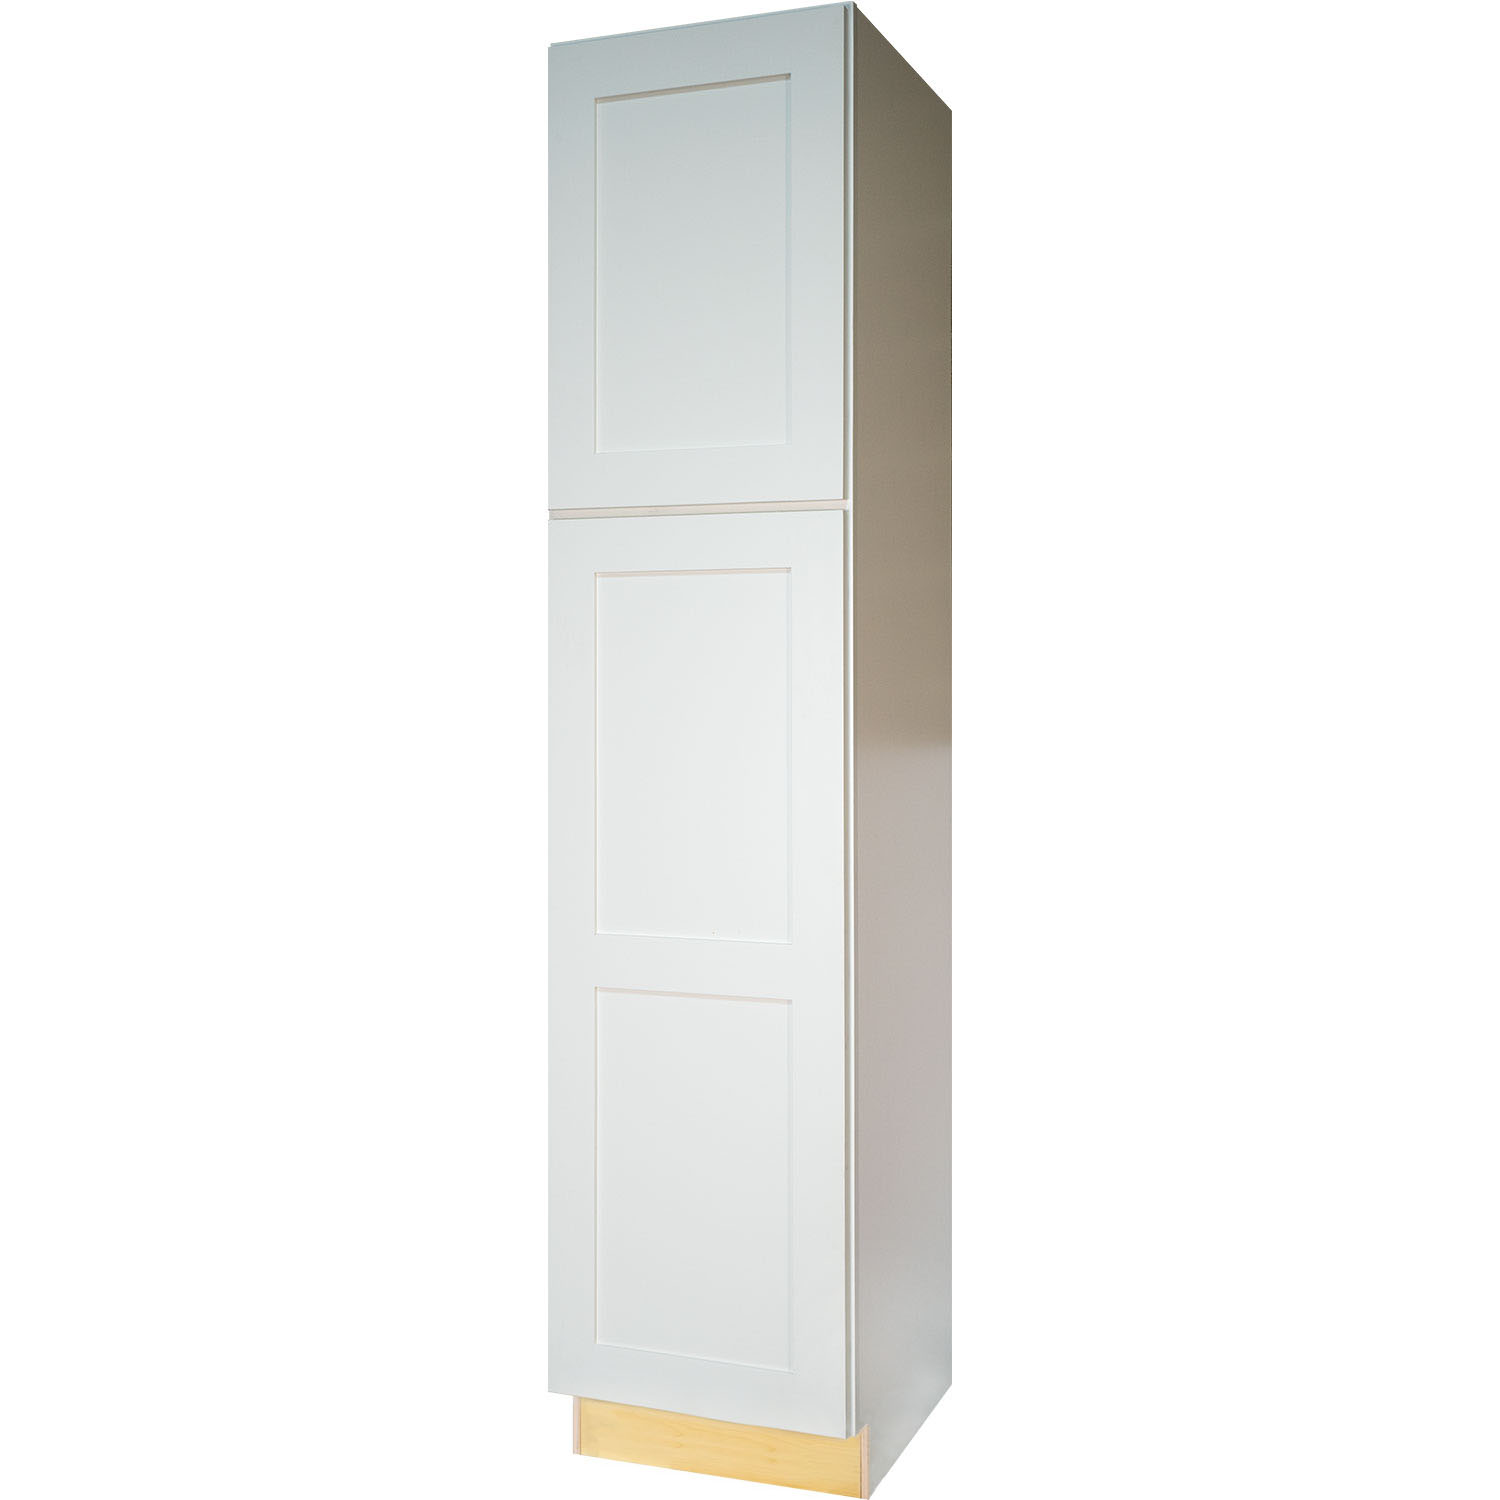 Everyday Cabinets 18-inch White Shaker Pantry / Utility Kitchen ...